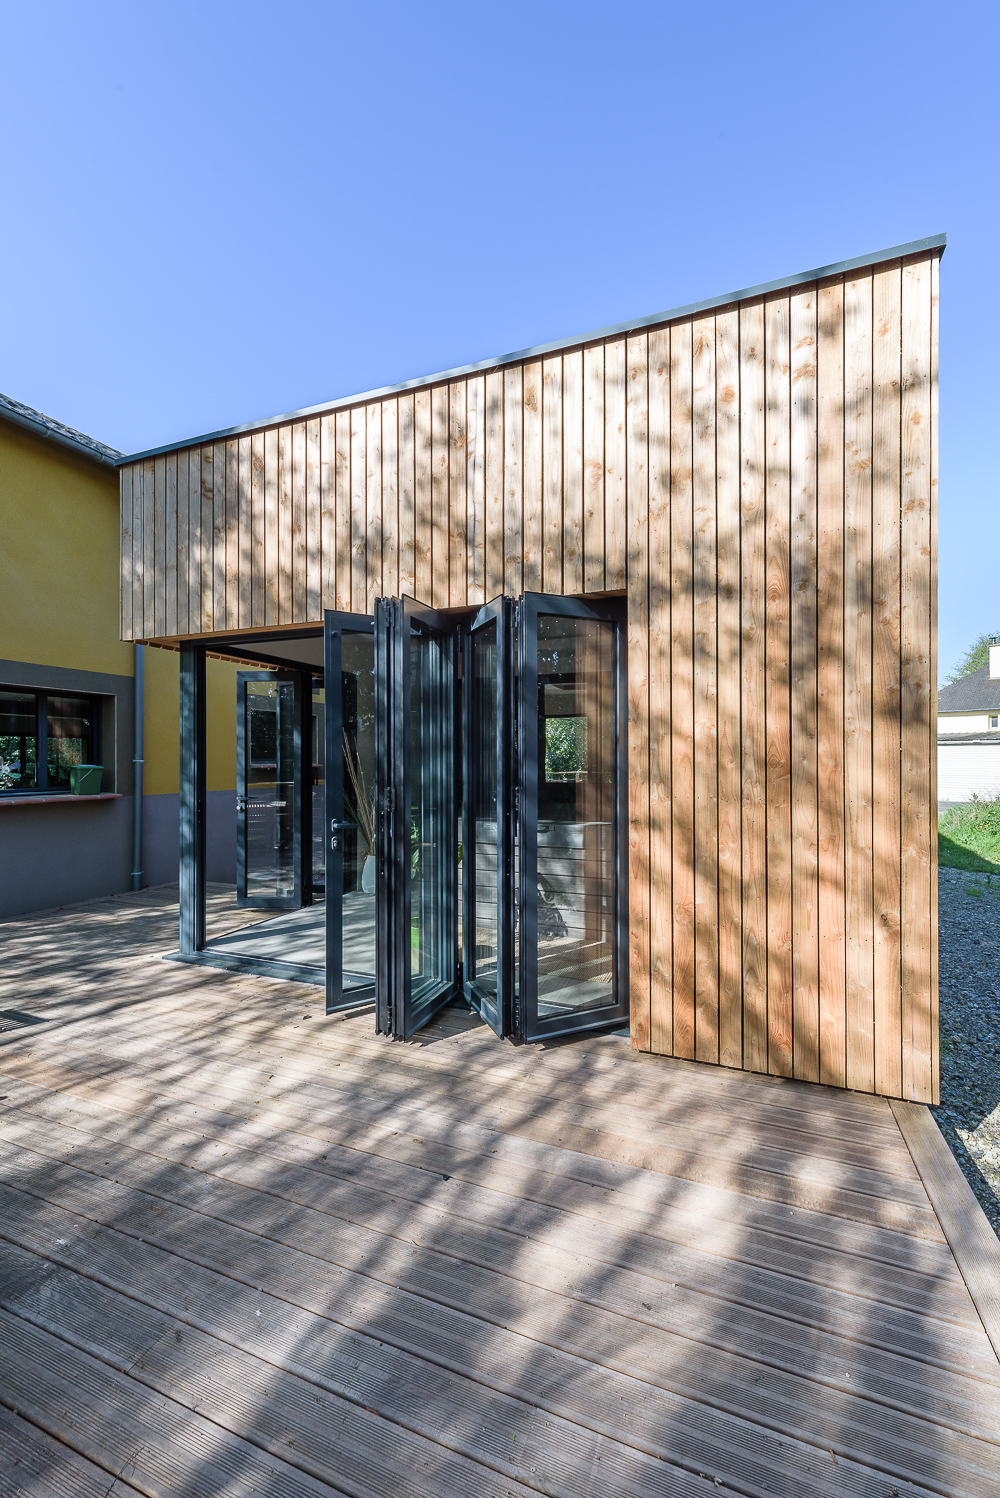 photographe d'architecture ©INTERVALphoto : Briand & Renault Architectes, extension, maison individuelle, Betton(35)